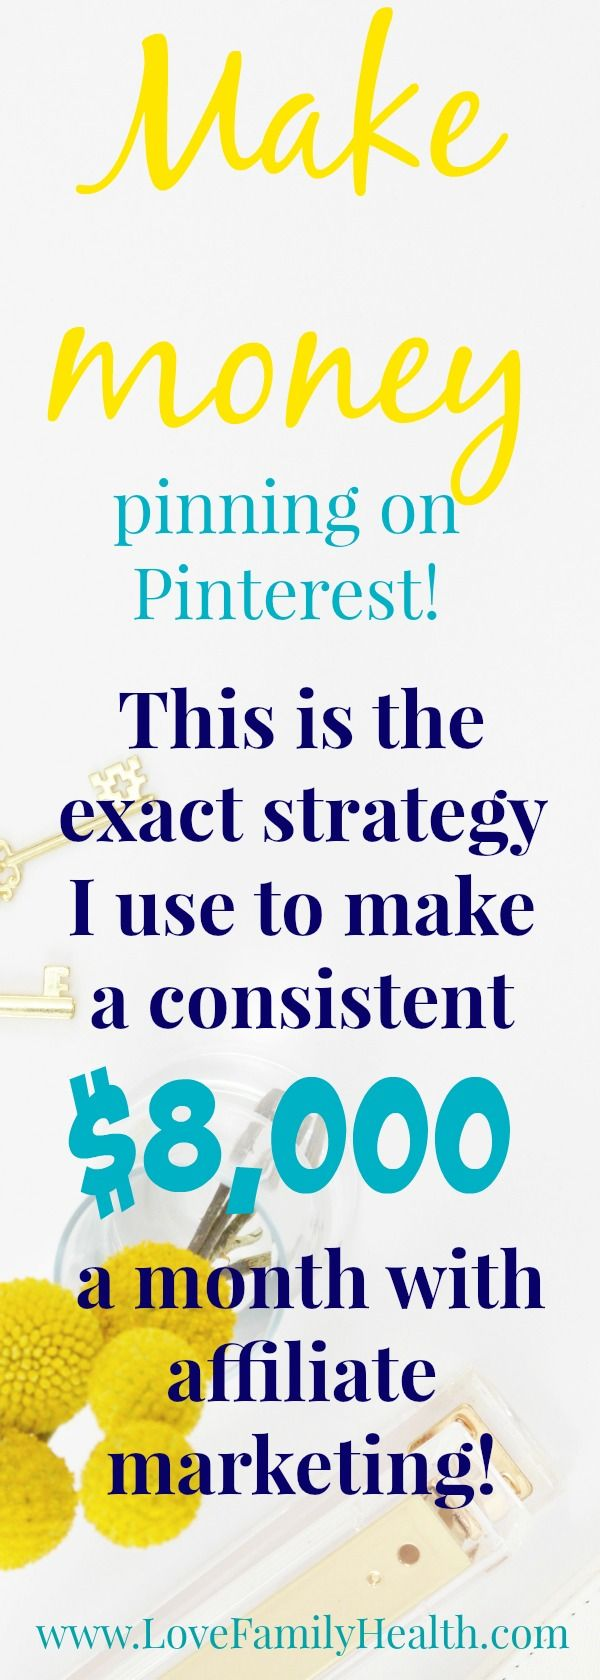 How to make your first affiliate sale on Pinterest! – LoveFamilyHealth. | Blogger | Pinterest Marketing | Social Media Marketing | Pinterest Management